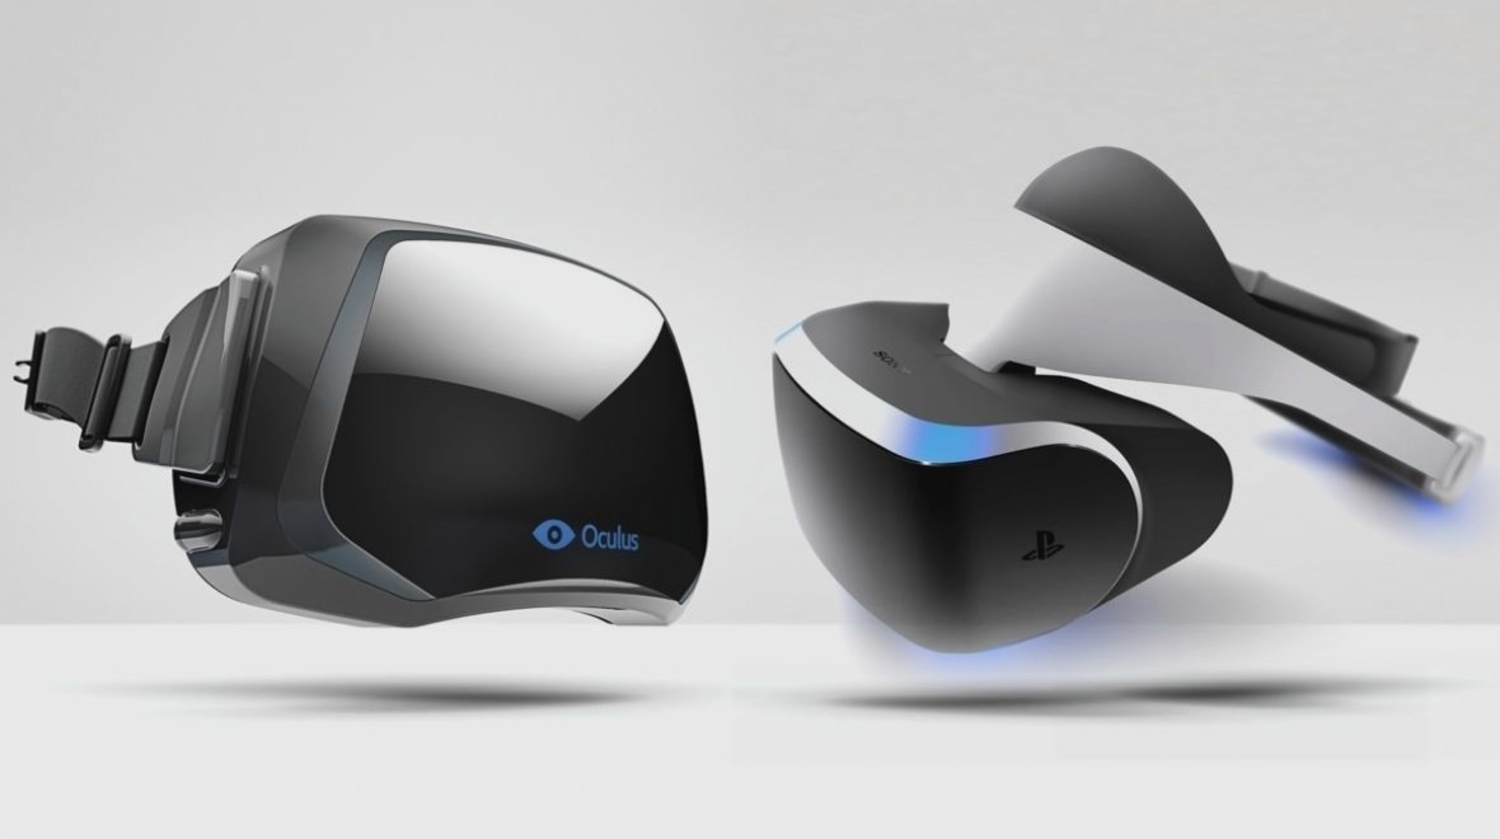 Oculus Rift vs Project Morpheus